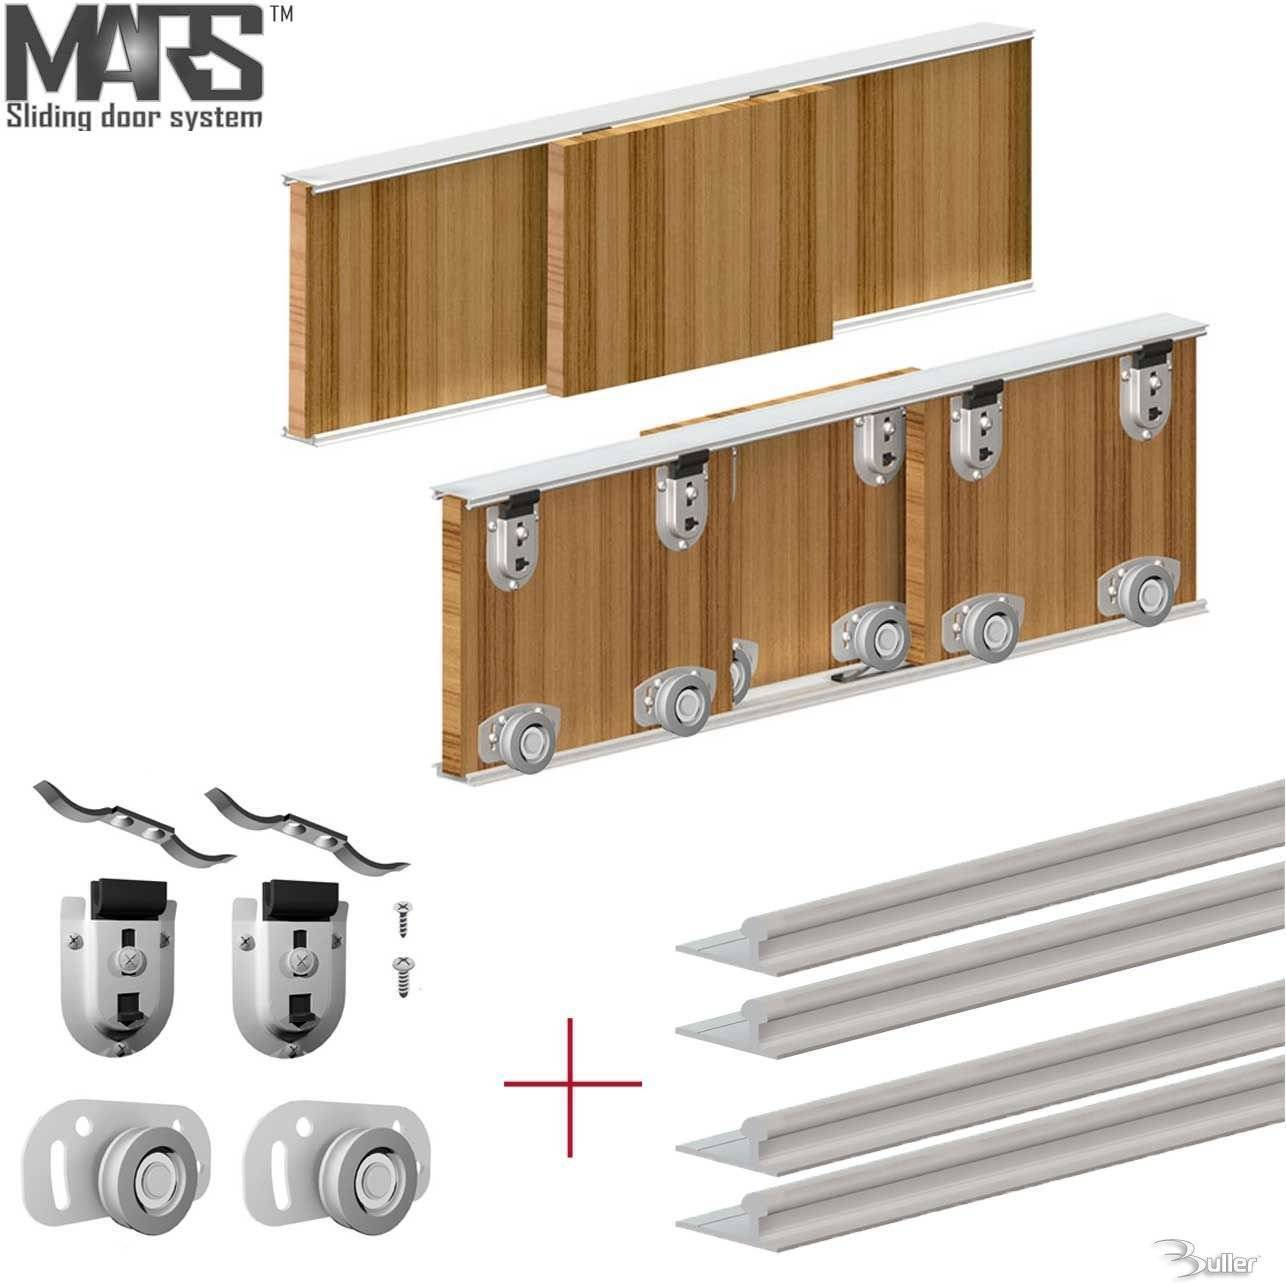 Mars Premium Wardrobe Sliding Door Diy Kit System